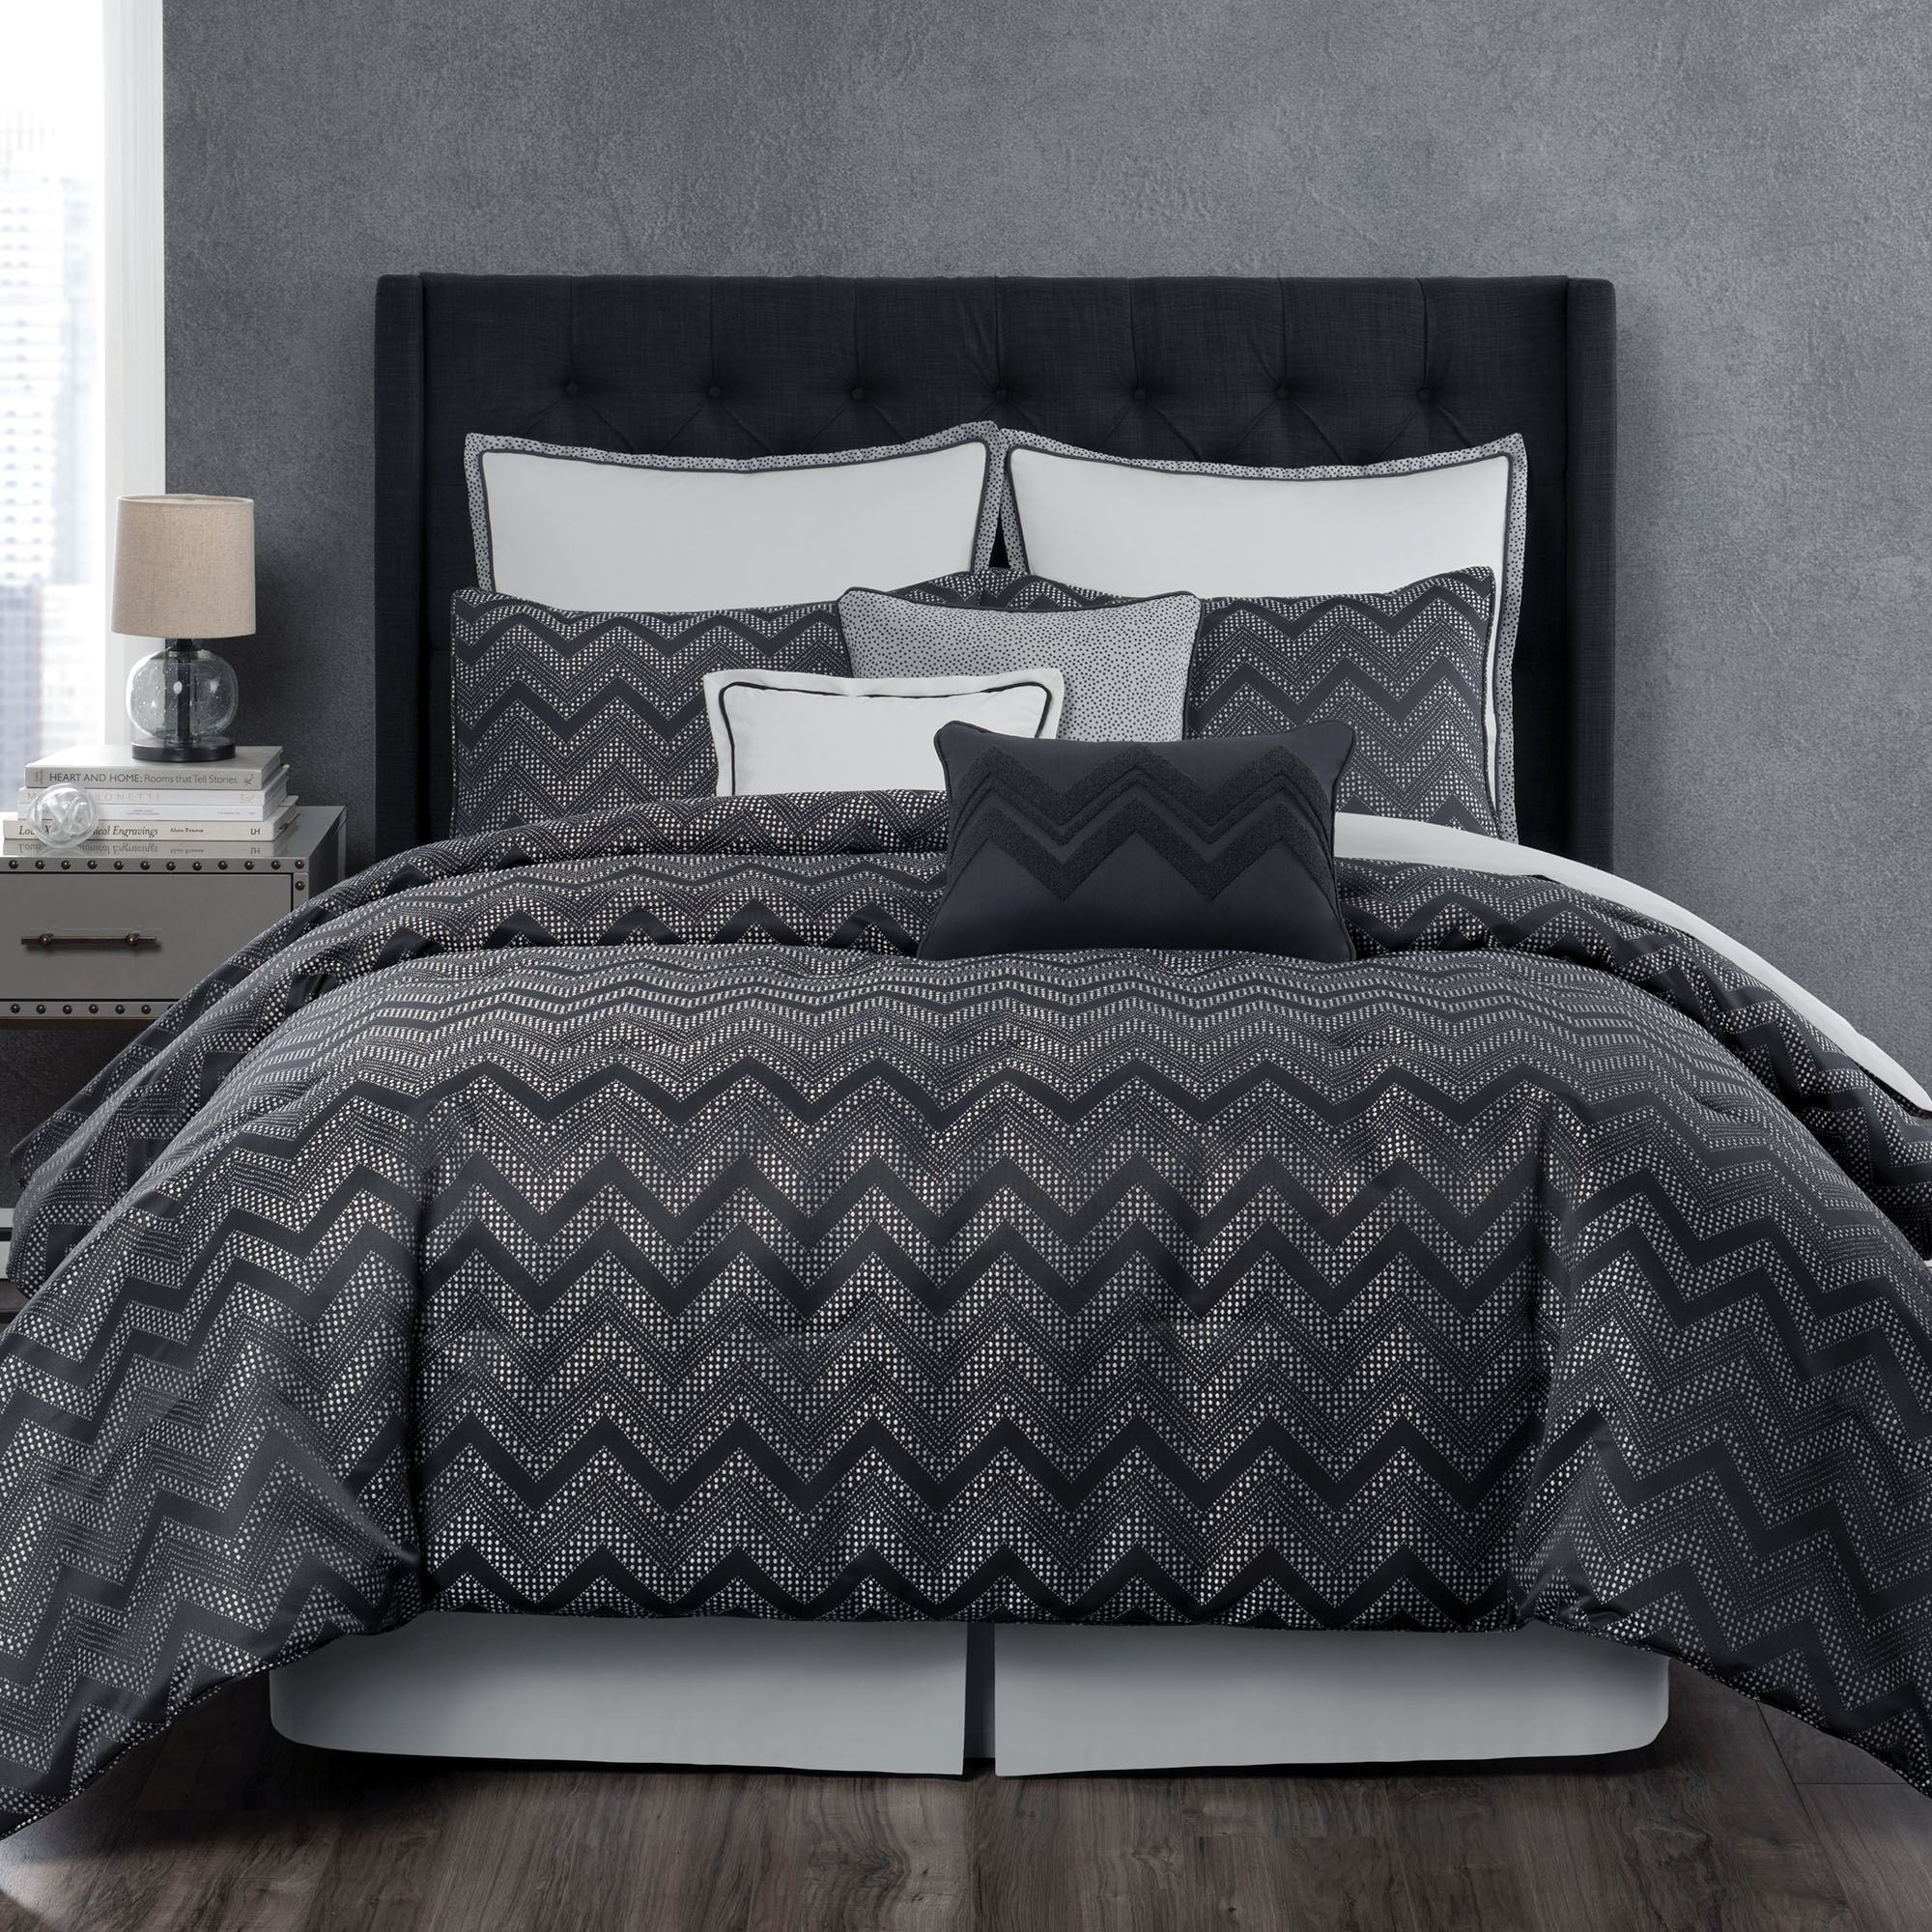 Berkeley Gray And Black Chevron Comforter Bedding From Laundry By